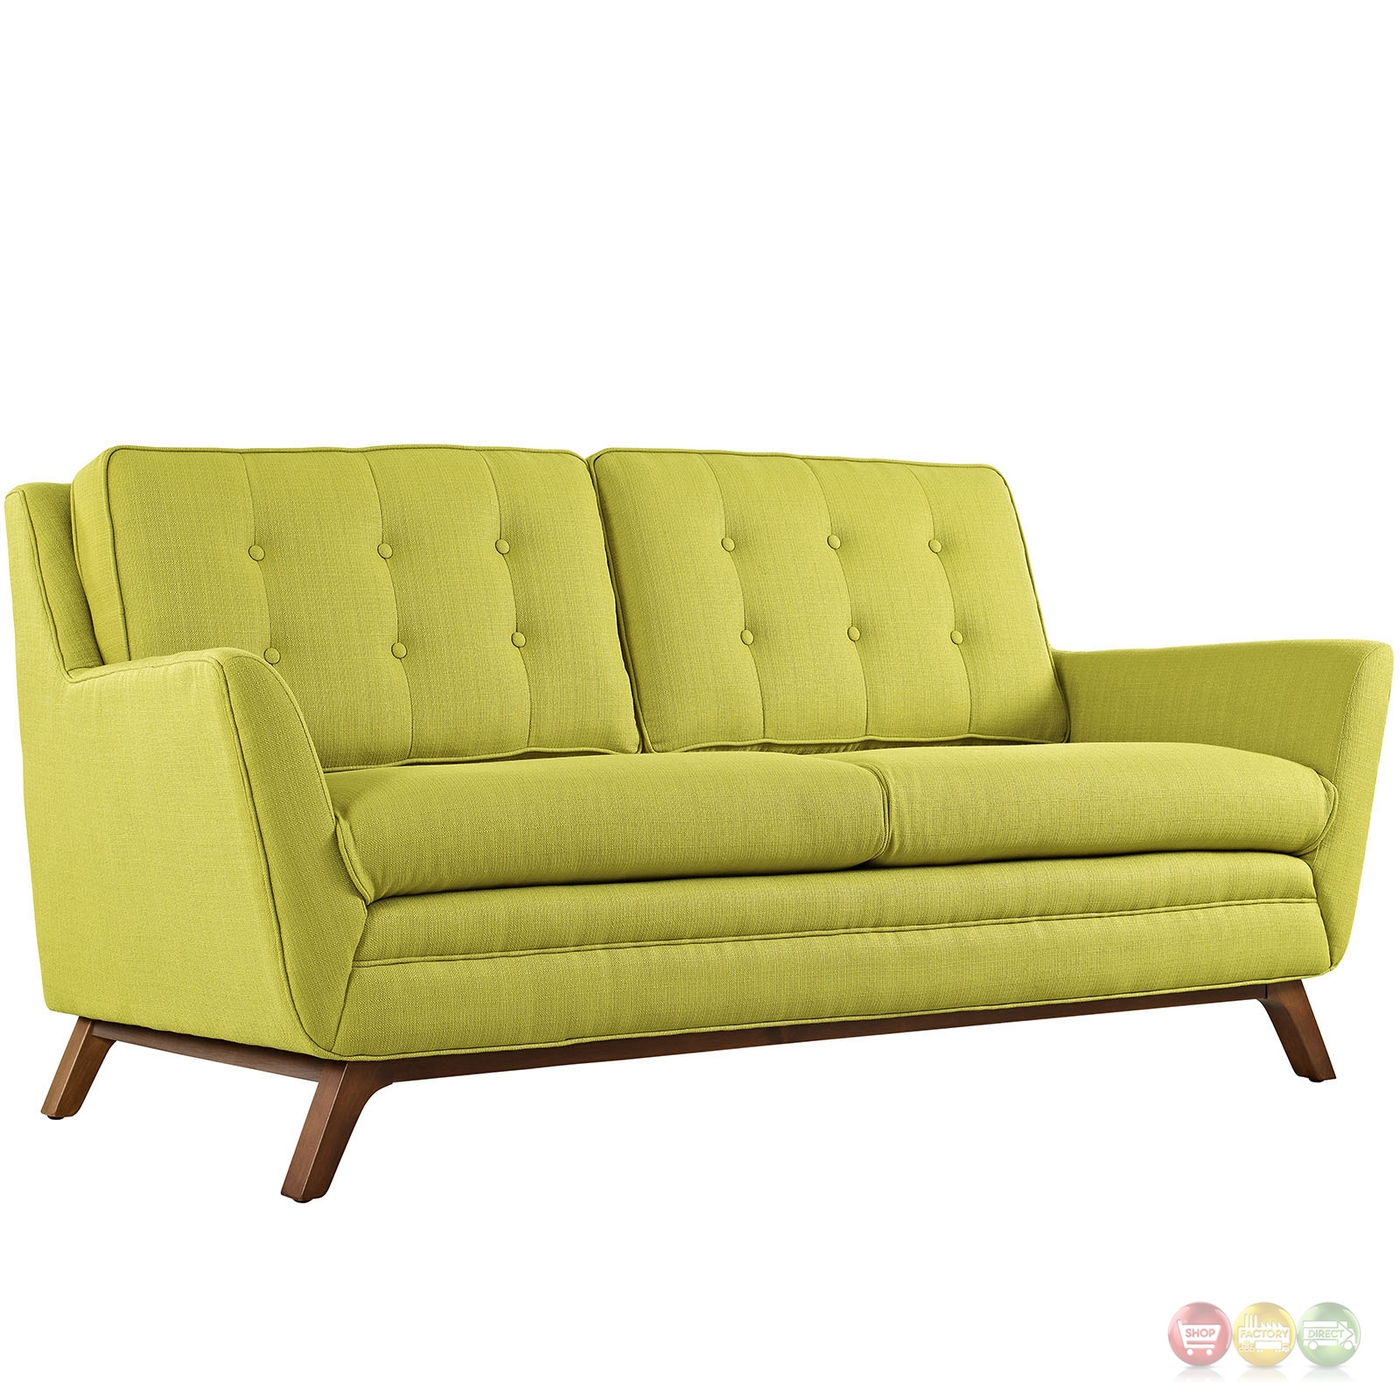 Beguile 2pc Upholstered Button tufted Sofa amp Loveseat Set  : beguile 2pc upholstered button tufted sofa loveseat set wheatgrass 5 from shopfactorydirect.com size 1400 x 1400 jpeg 586kB